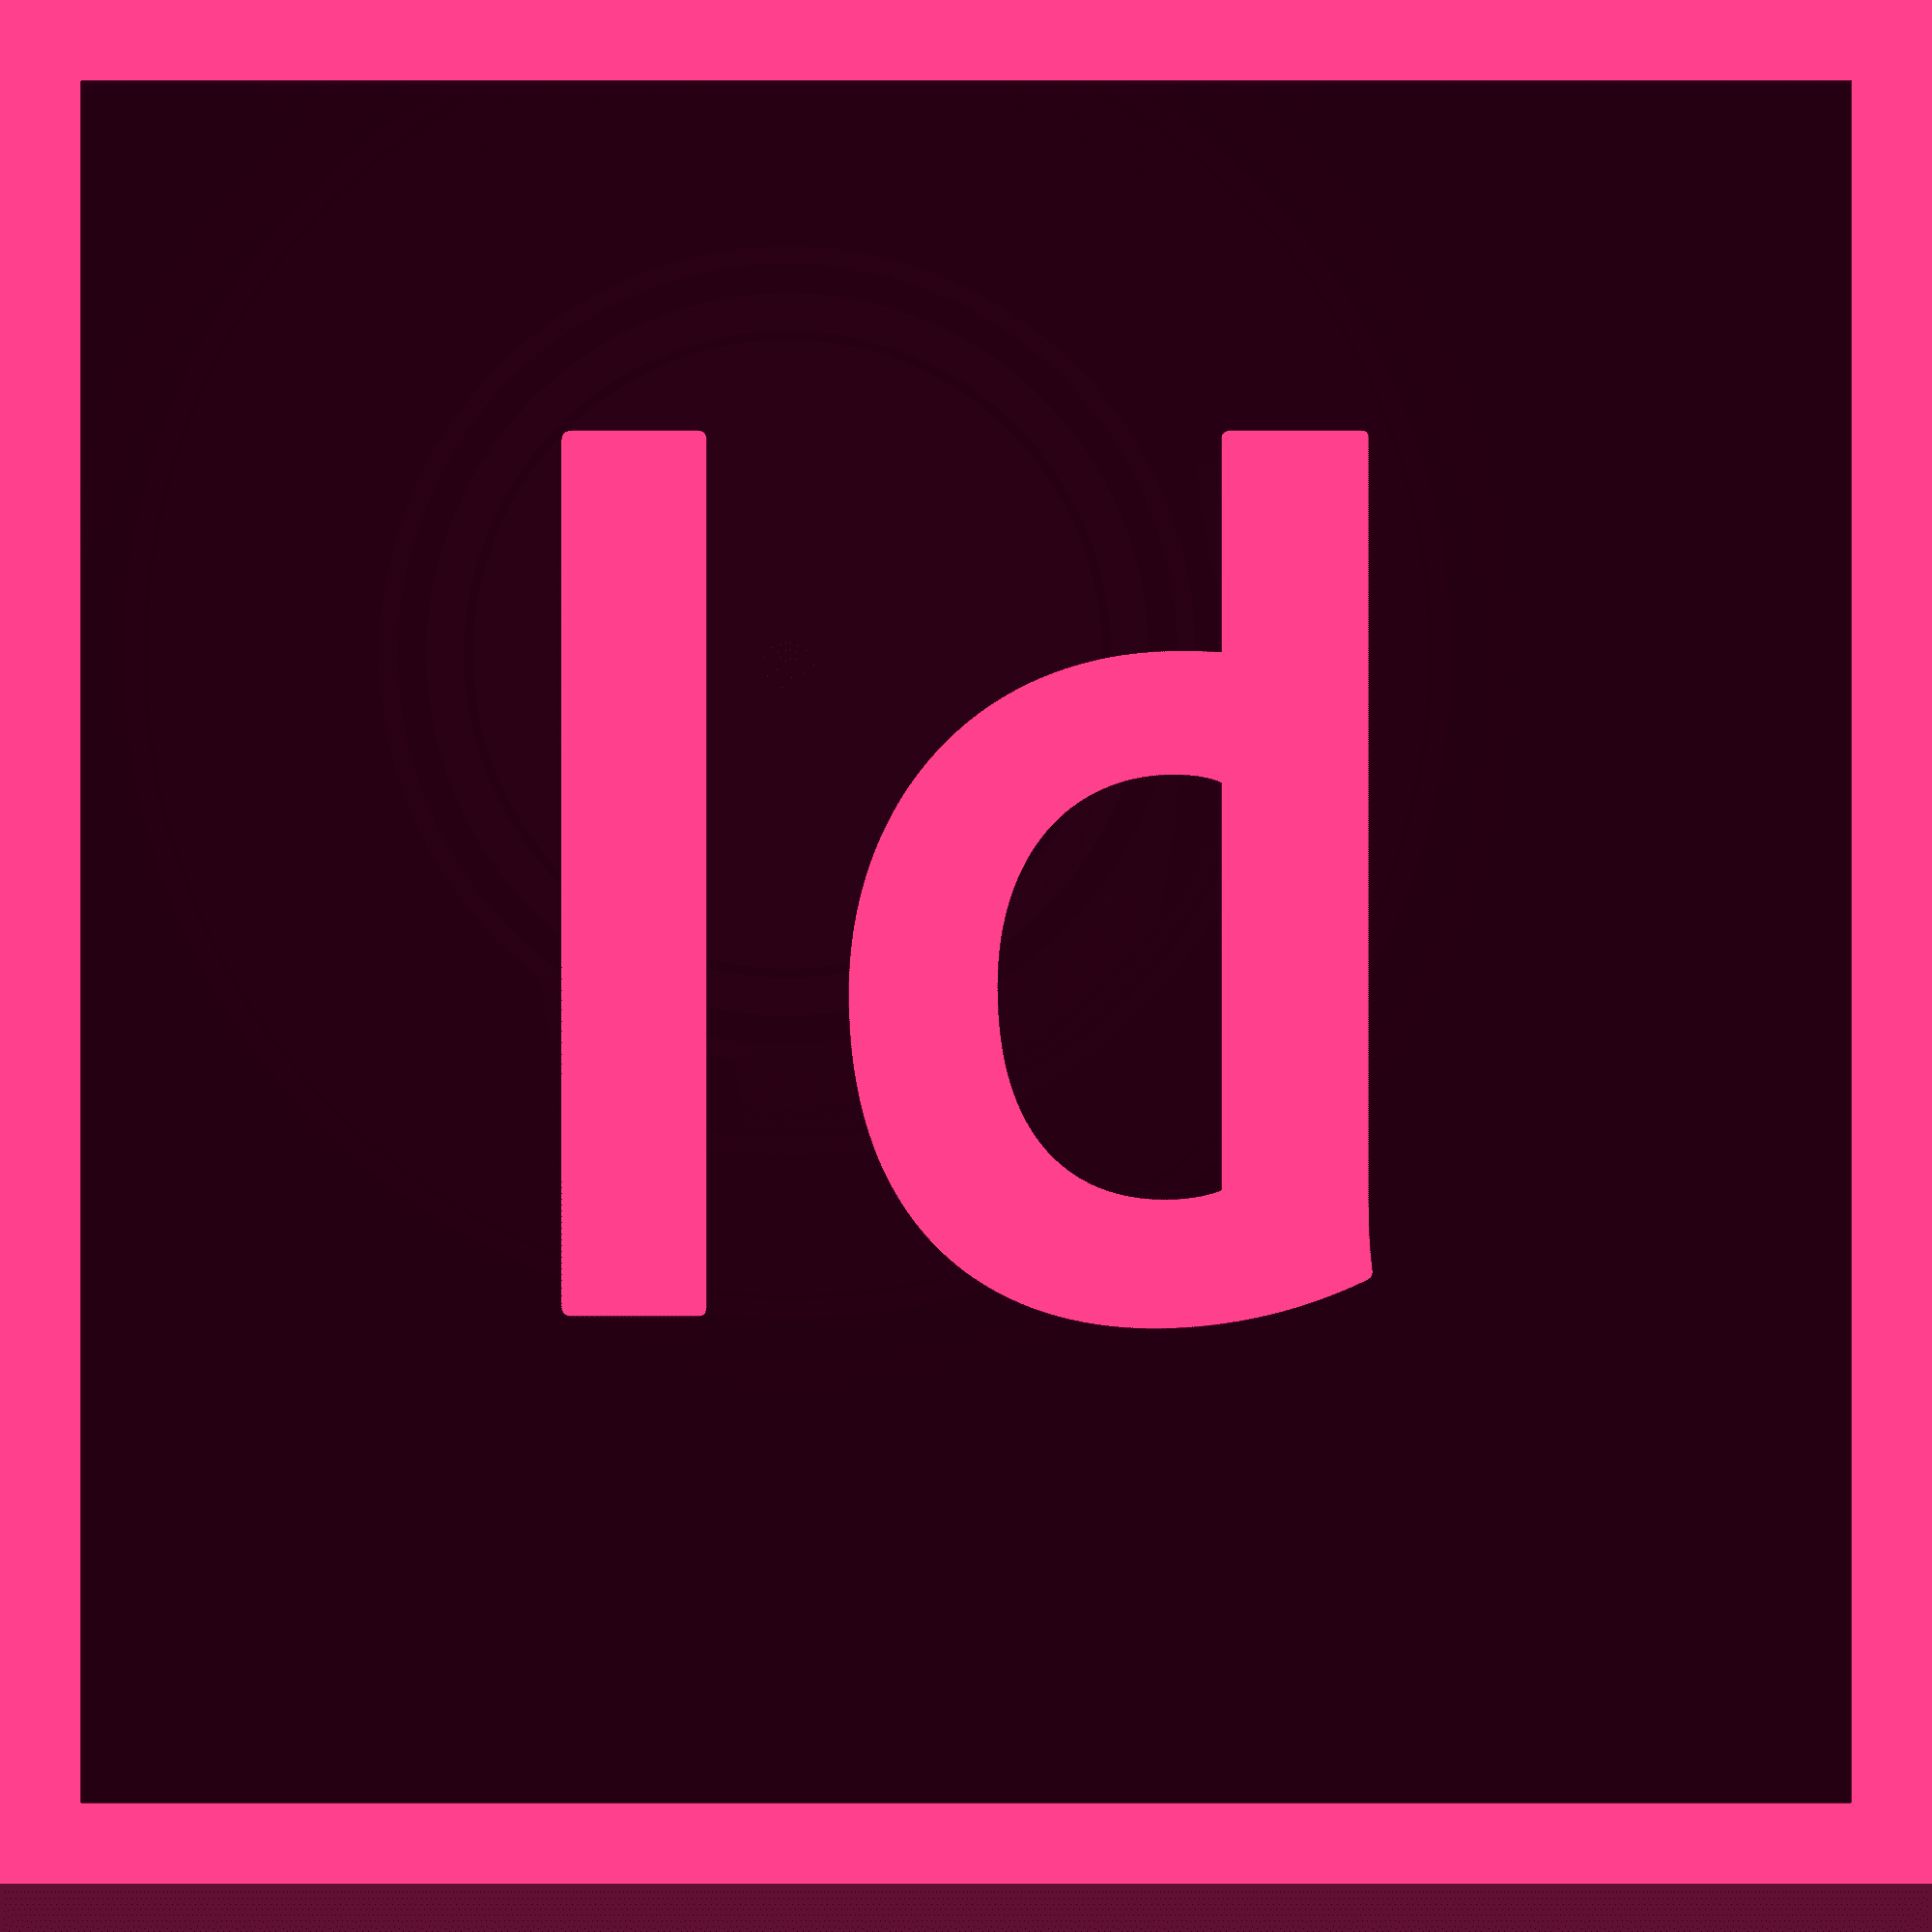 Adobe InDesign CC Multiple Platforms Multi European Languages License New 1 лицензия 1 ПК на 1 год